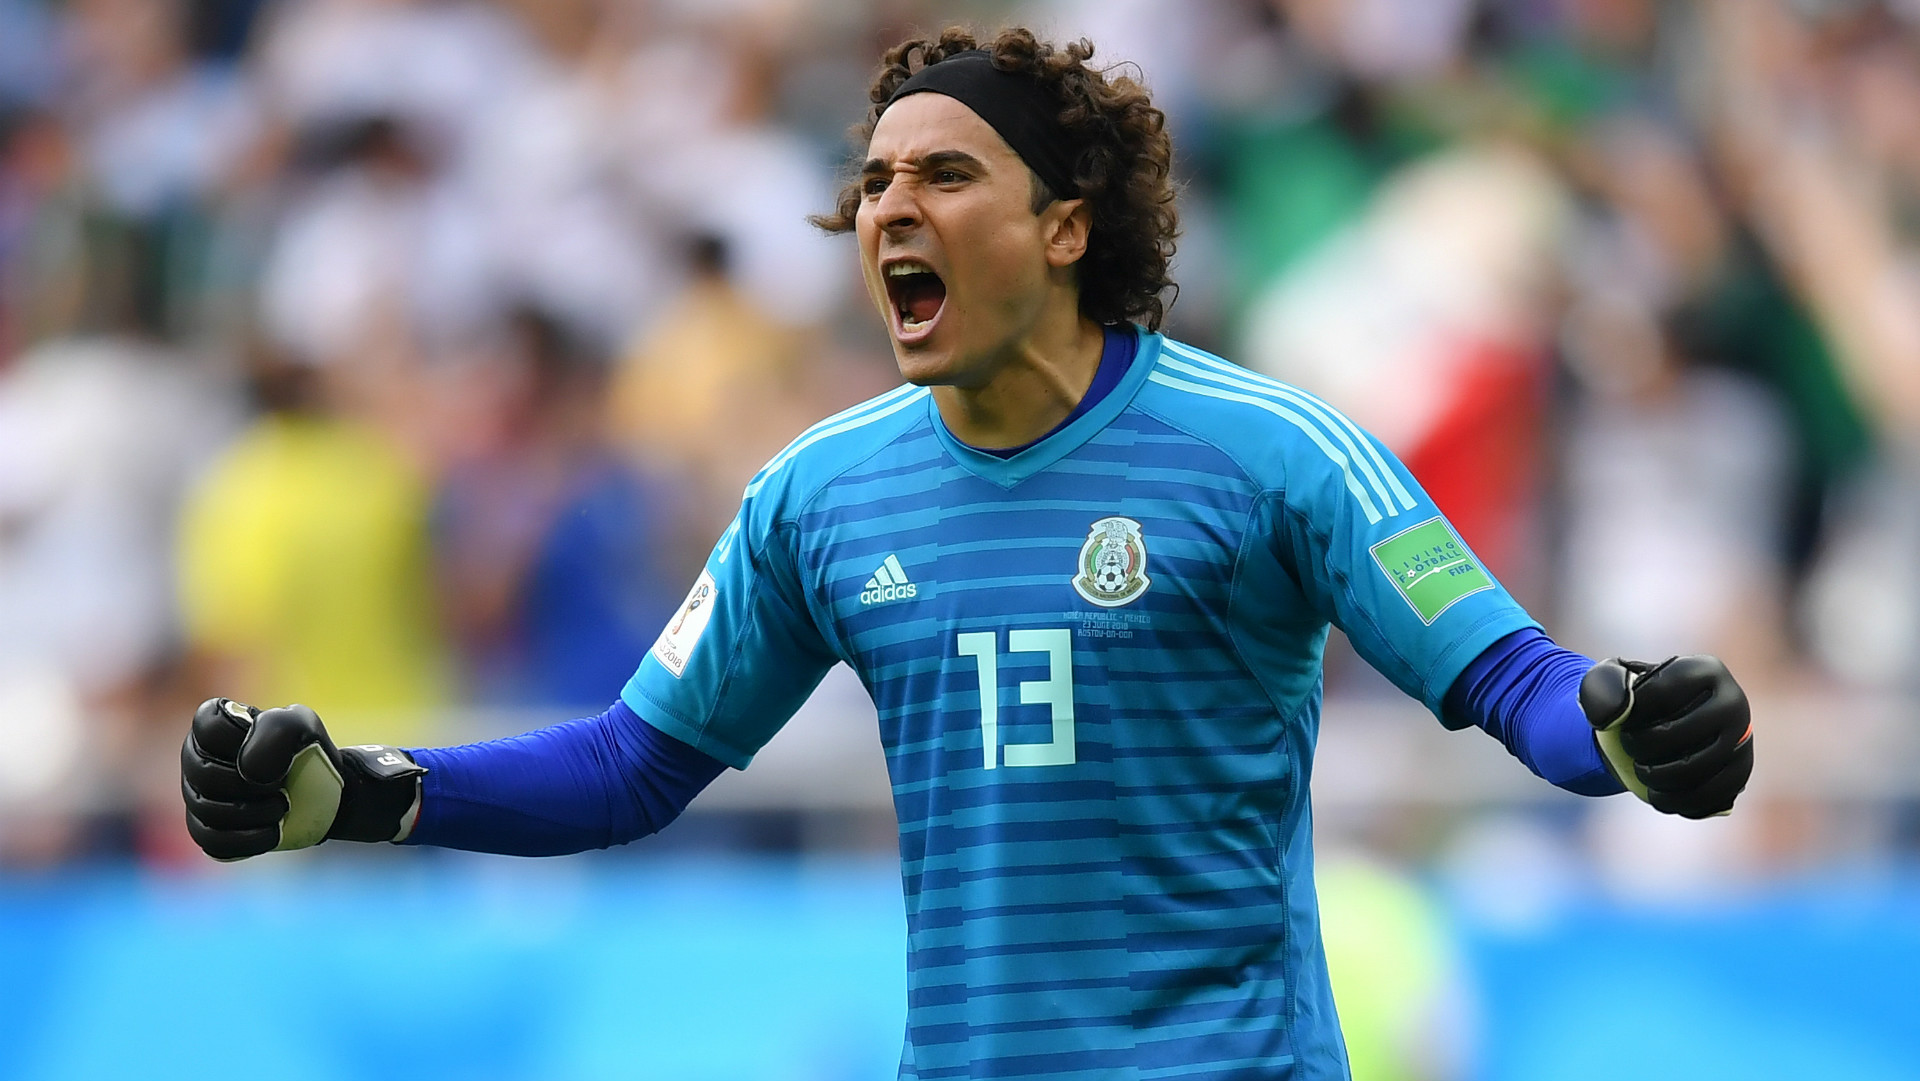 Mexico national team goalkeeper guillermo ochoa sets - Guillermo ochoa wallpaper ...